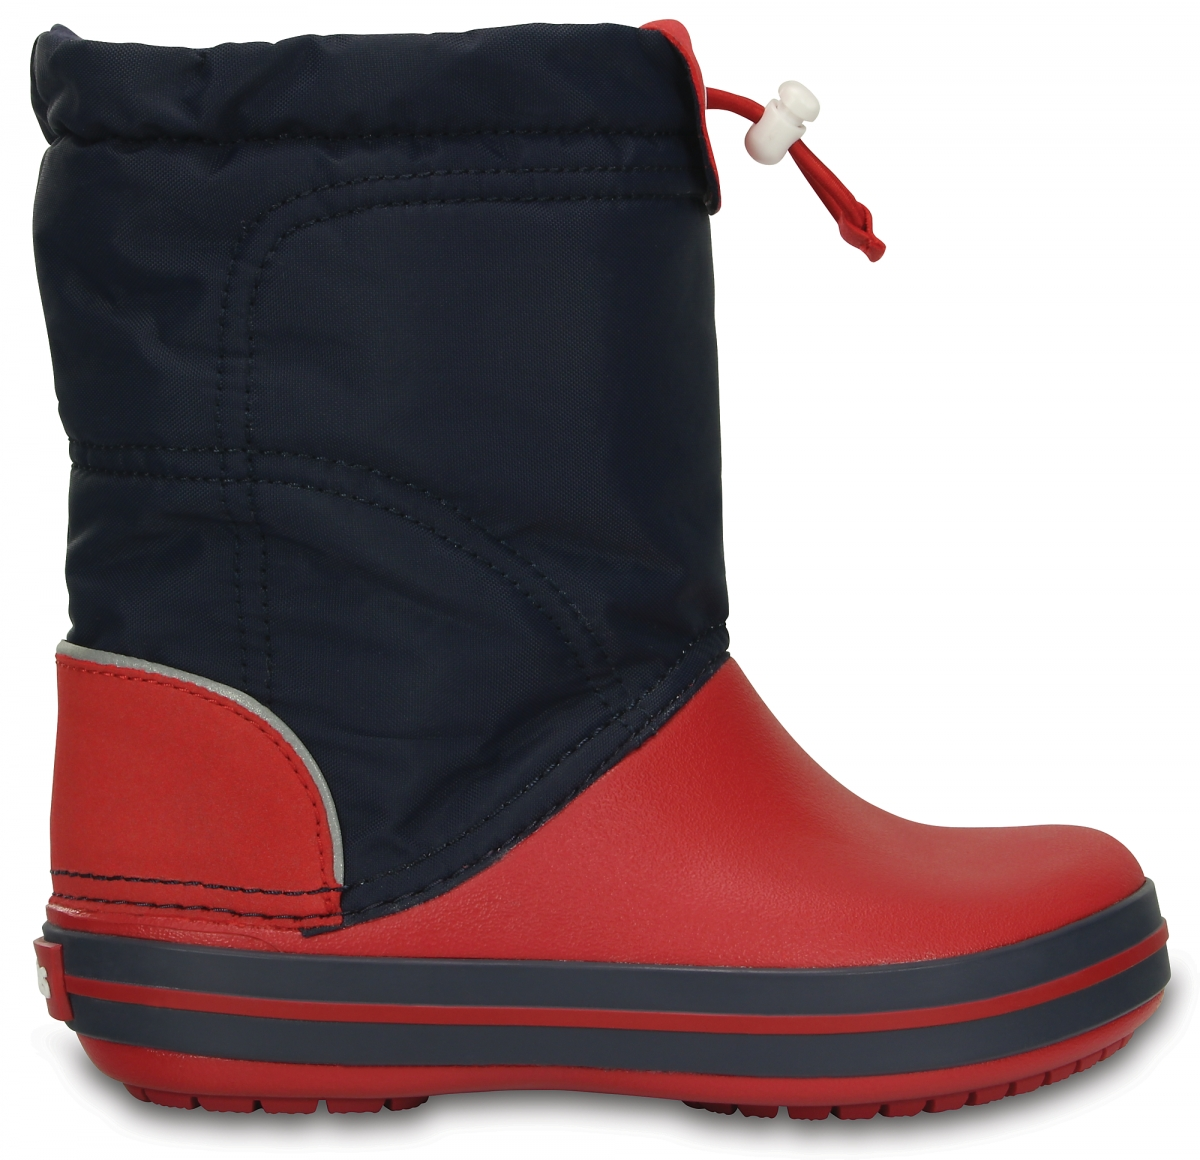 Crocs Crocband LodgePoint Boot Kids Navy/Red, C11 (28-29)